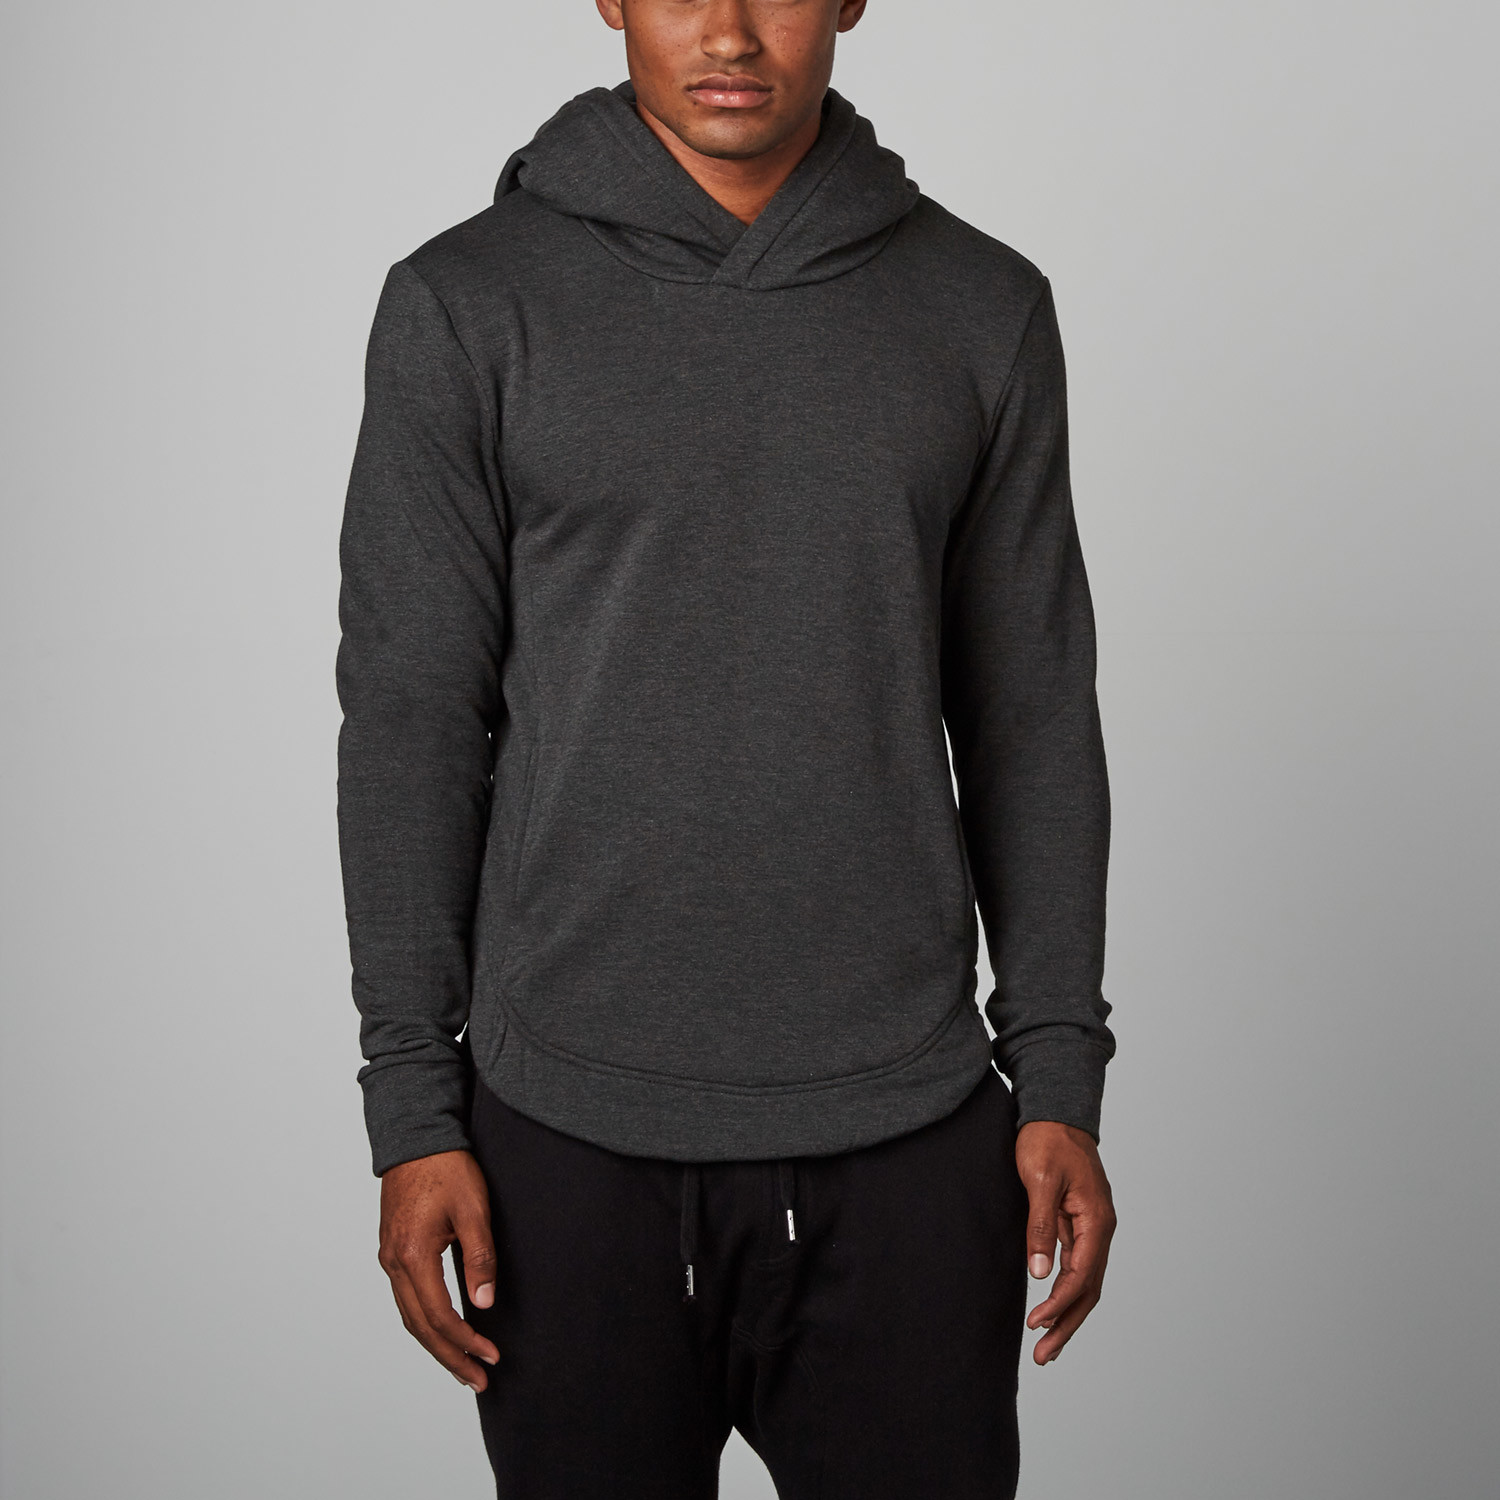 acdcae8ae A1 Fitted Pullover // Charcoal Fleece (L) - AROS - Touch of Modern